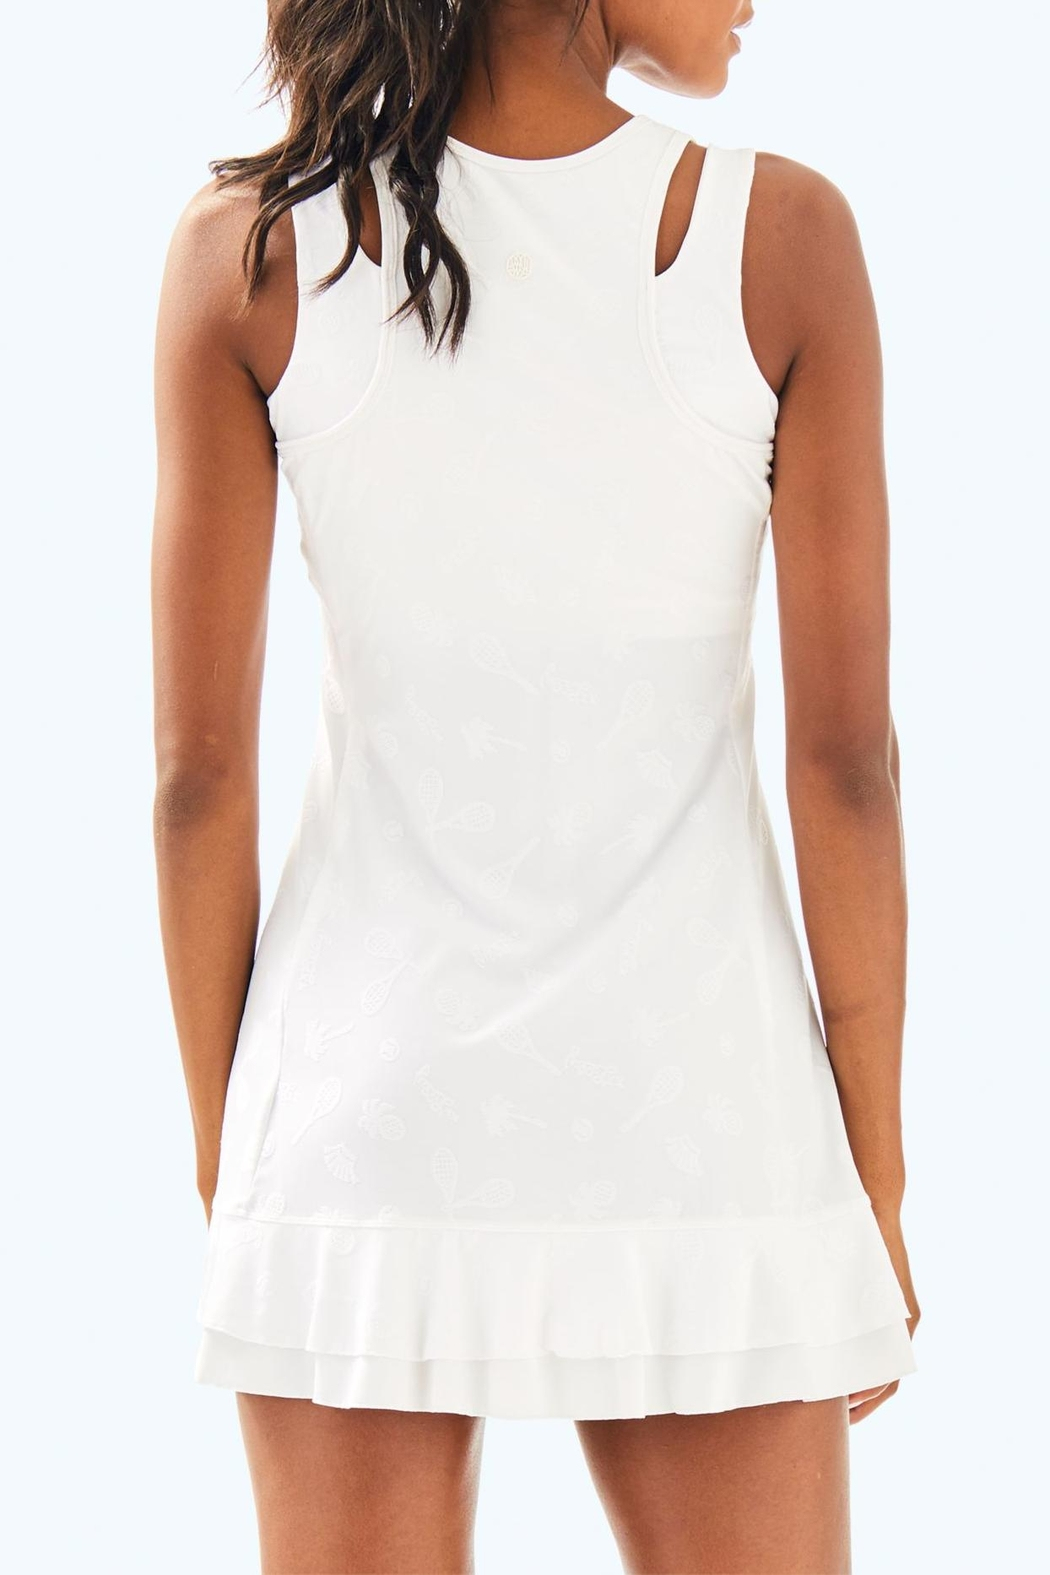 Lilly Pulitzer Delphina Tennis Dress - Front Full Image